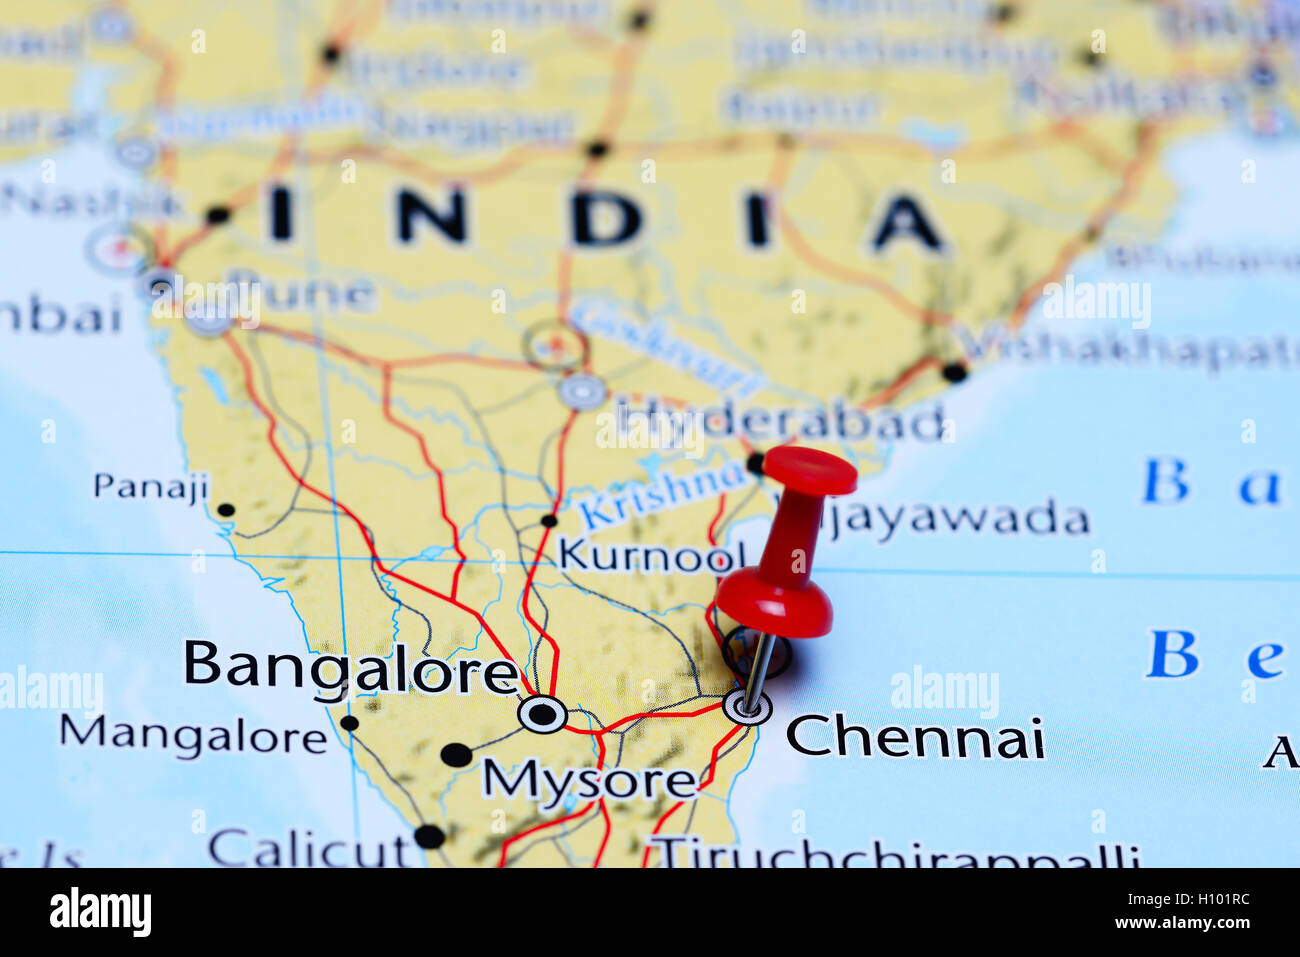 chennai pinned on a map of india stock photo royalty free image